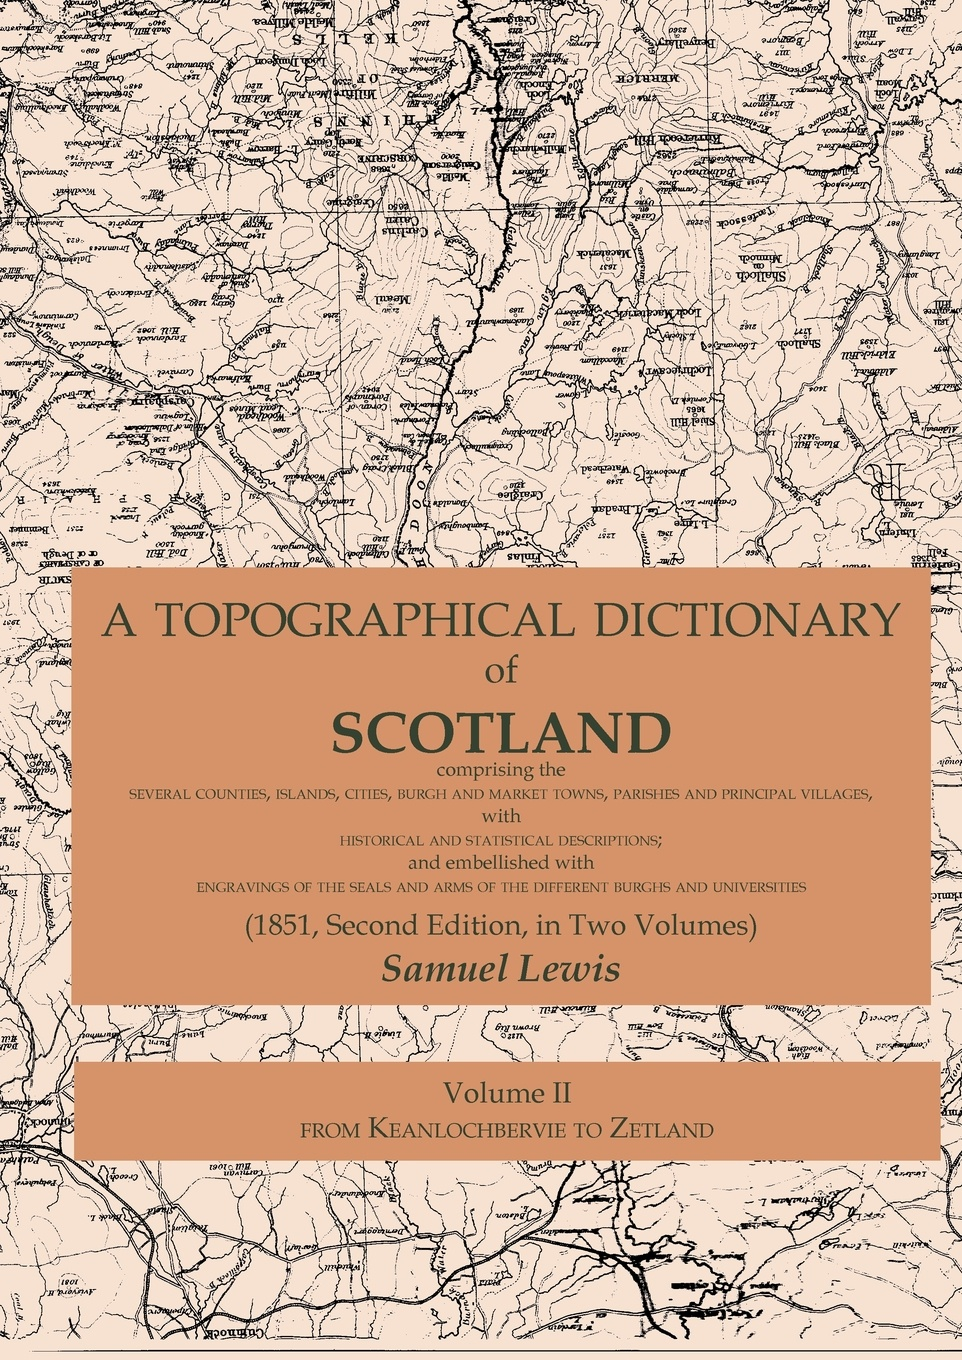 Samuel Lewis A Topographical Dictionary of Scotland comprising the several counties, islands, cities, burgh and market towns, parishes and principal villages, with historical and statistical descriptions; and embellished with engravings of the seals and arms o...